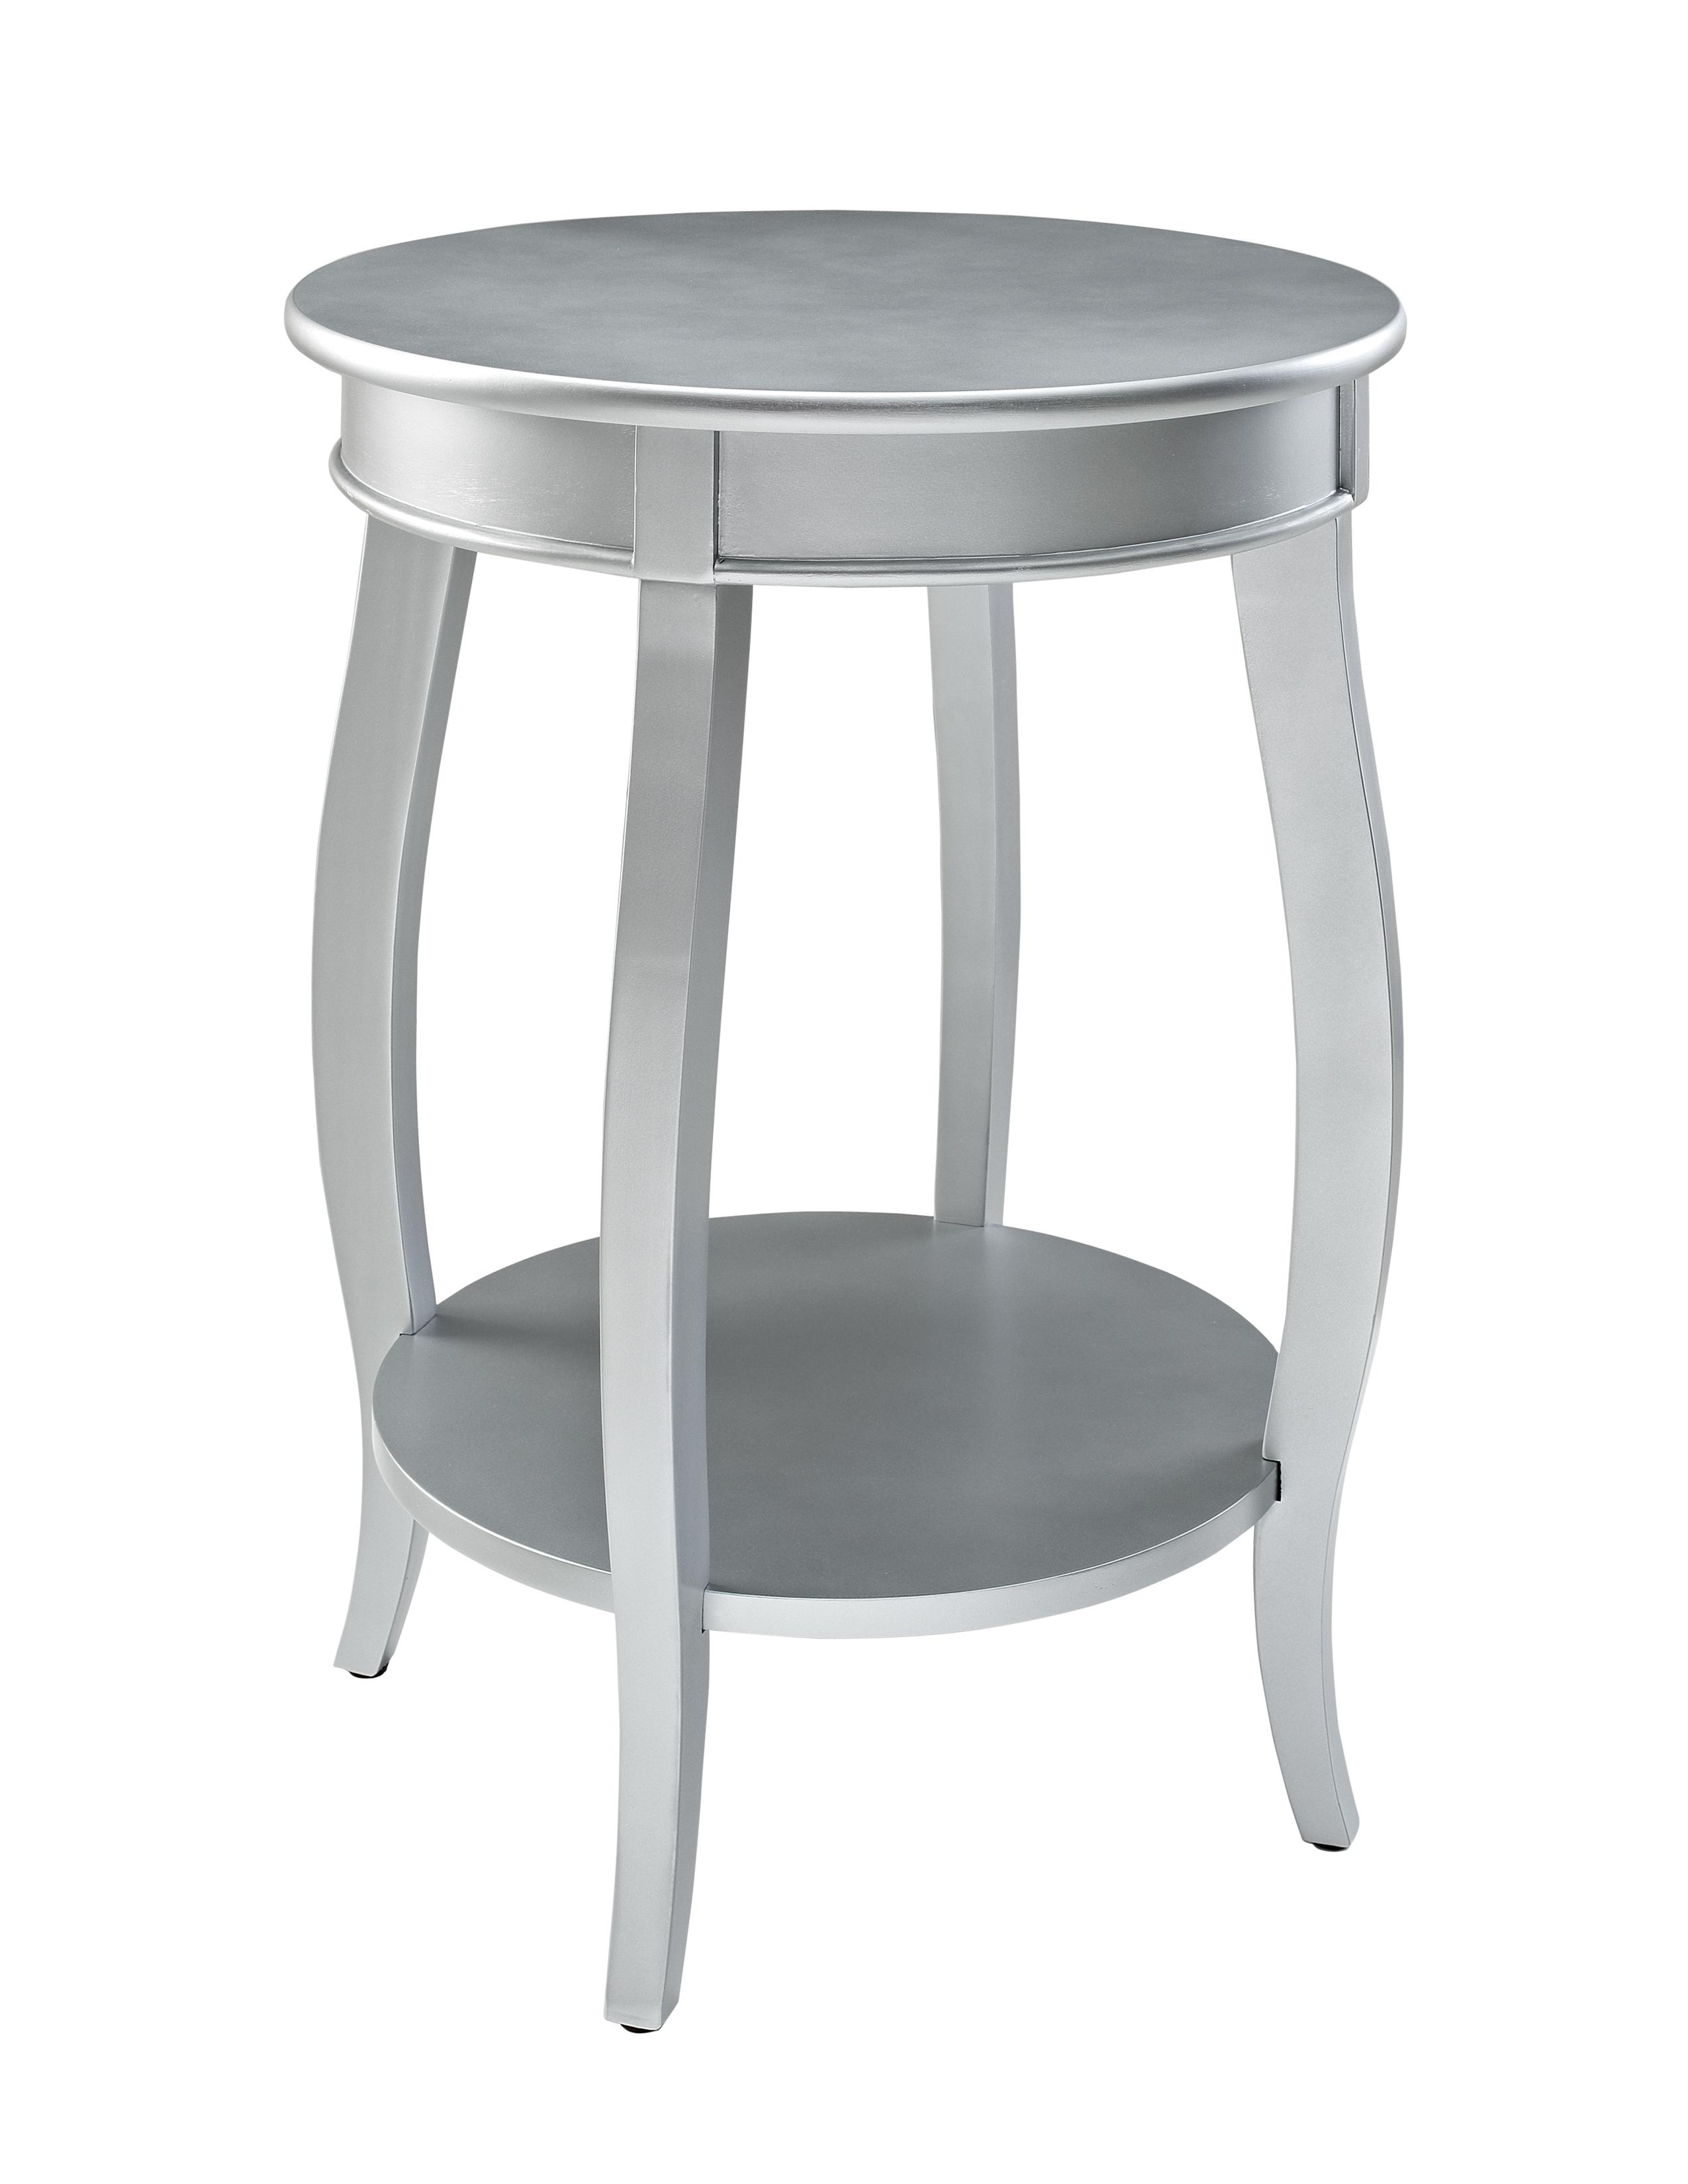 Powell Accent Tables Round Table w/ Shelf - Item Number: 145-350